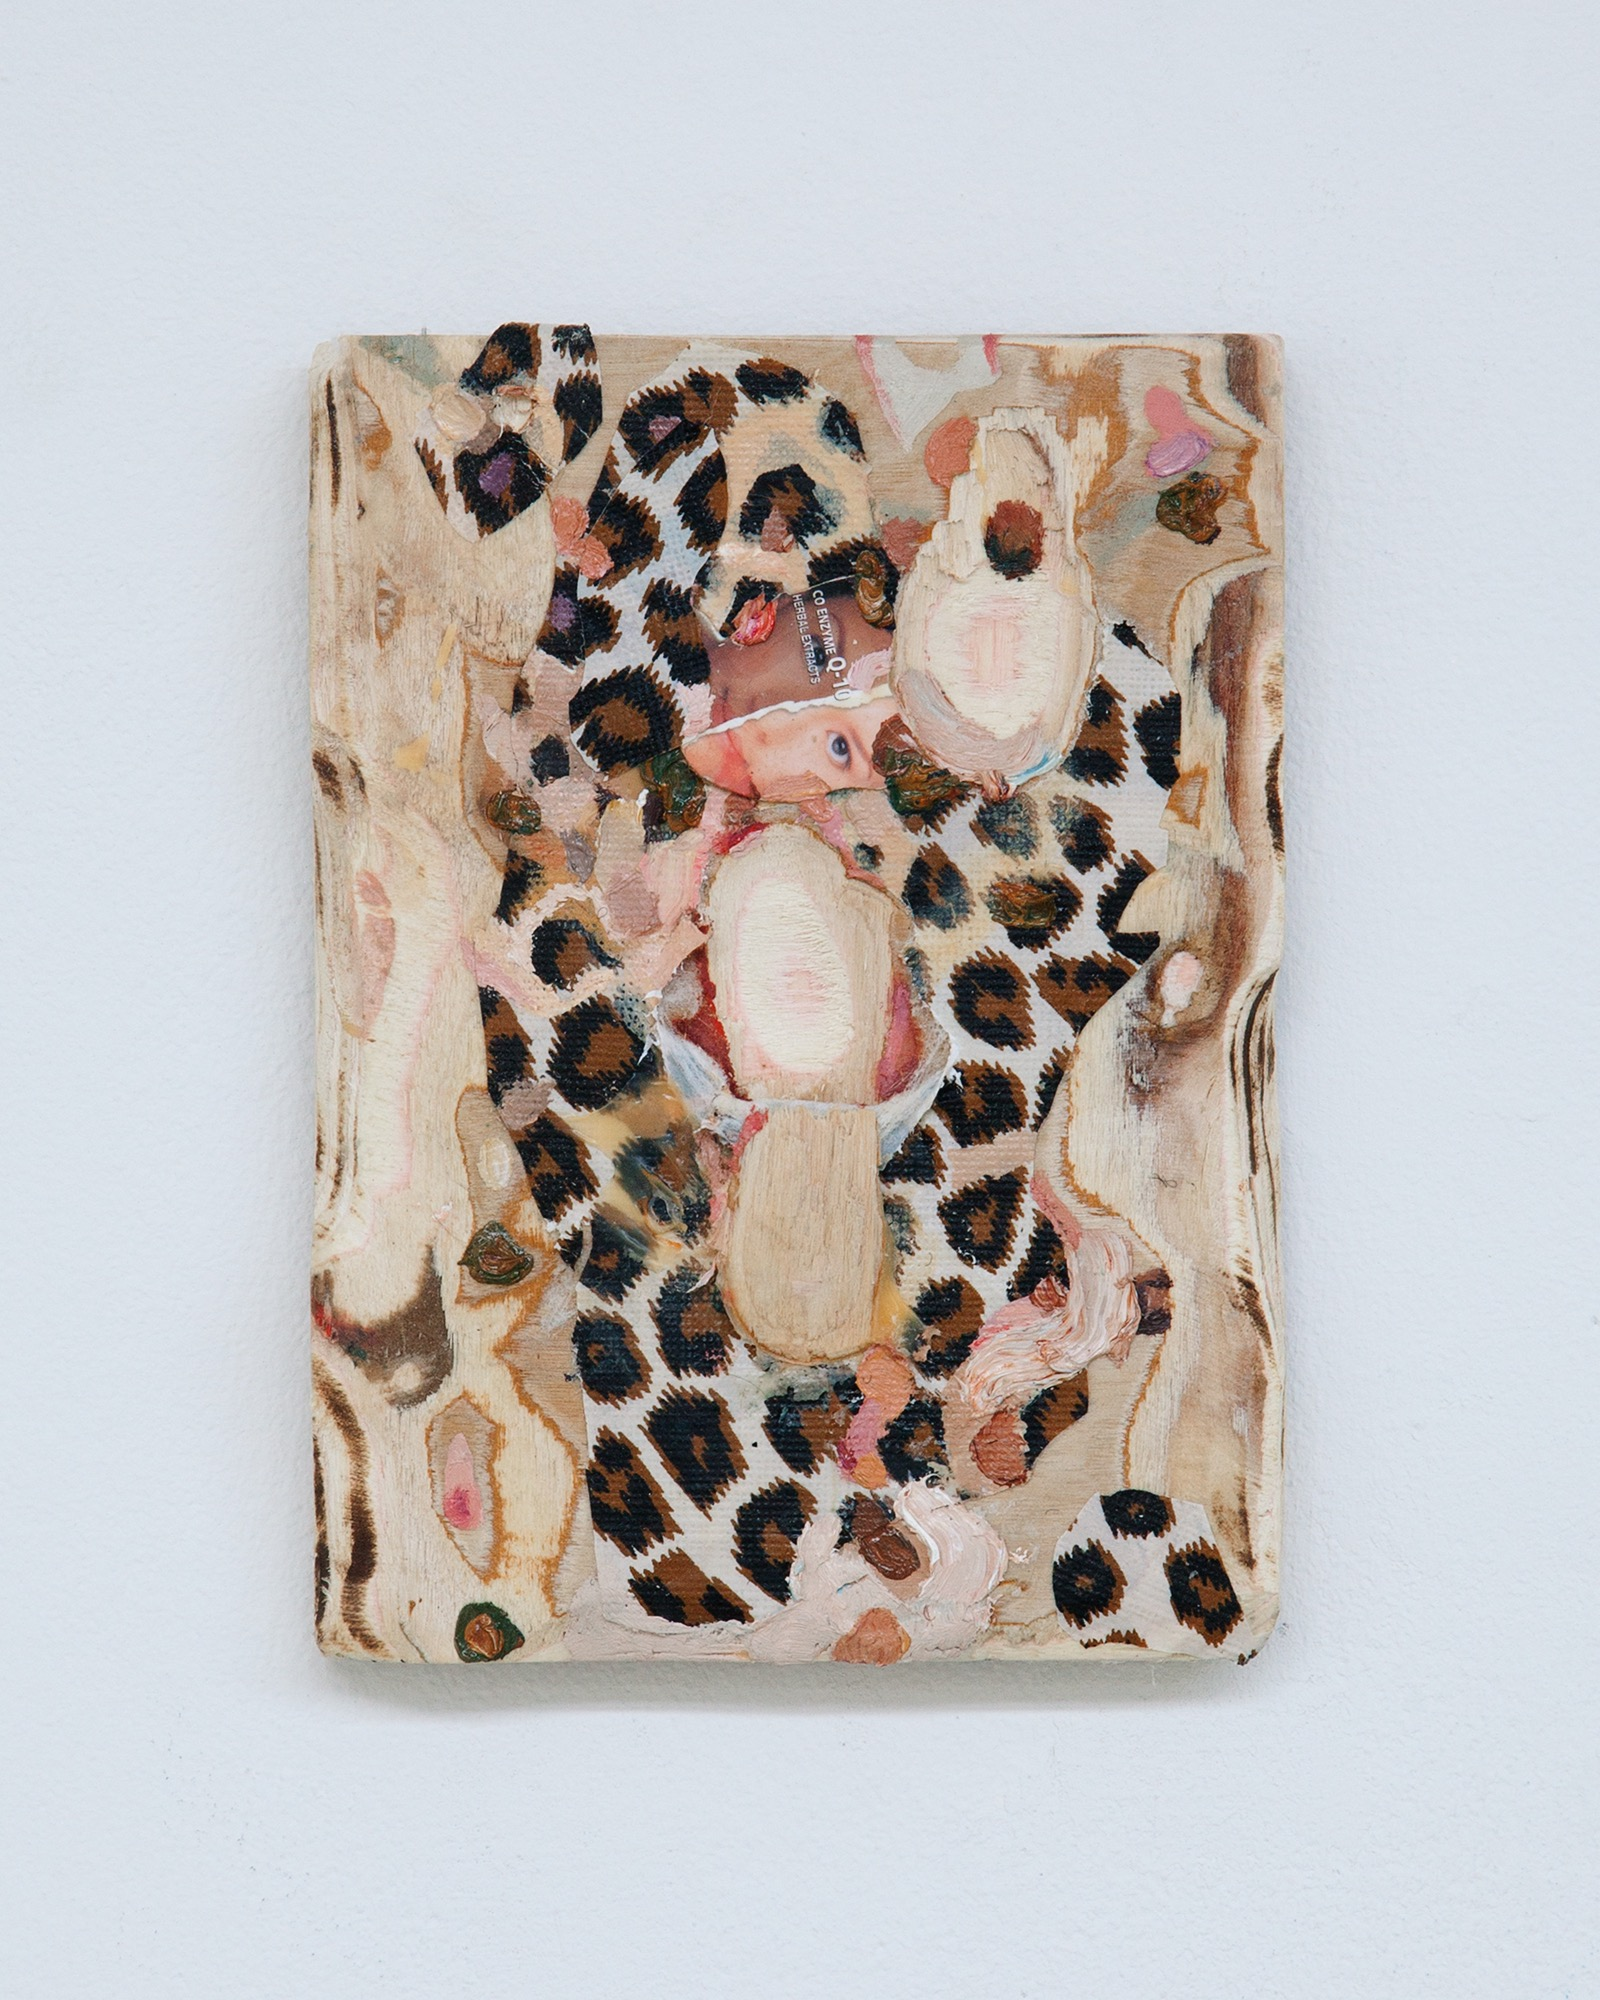 Piebald , 2015, oil, plastic, and skin whitening soap box on carved wood,7 x 5 inches